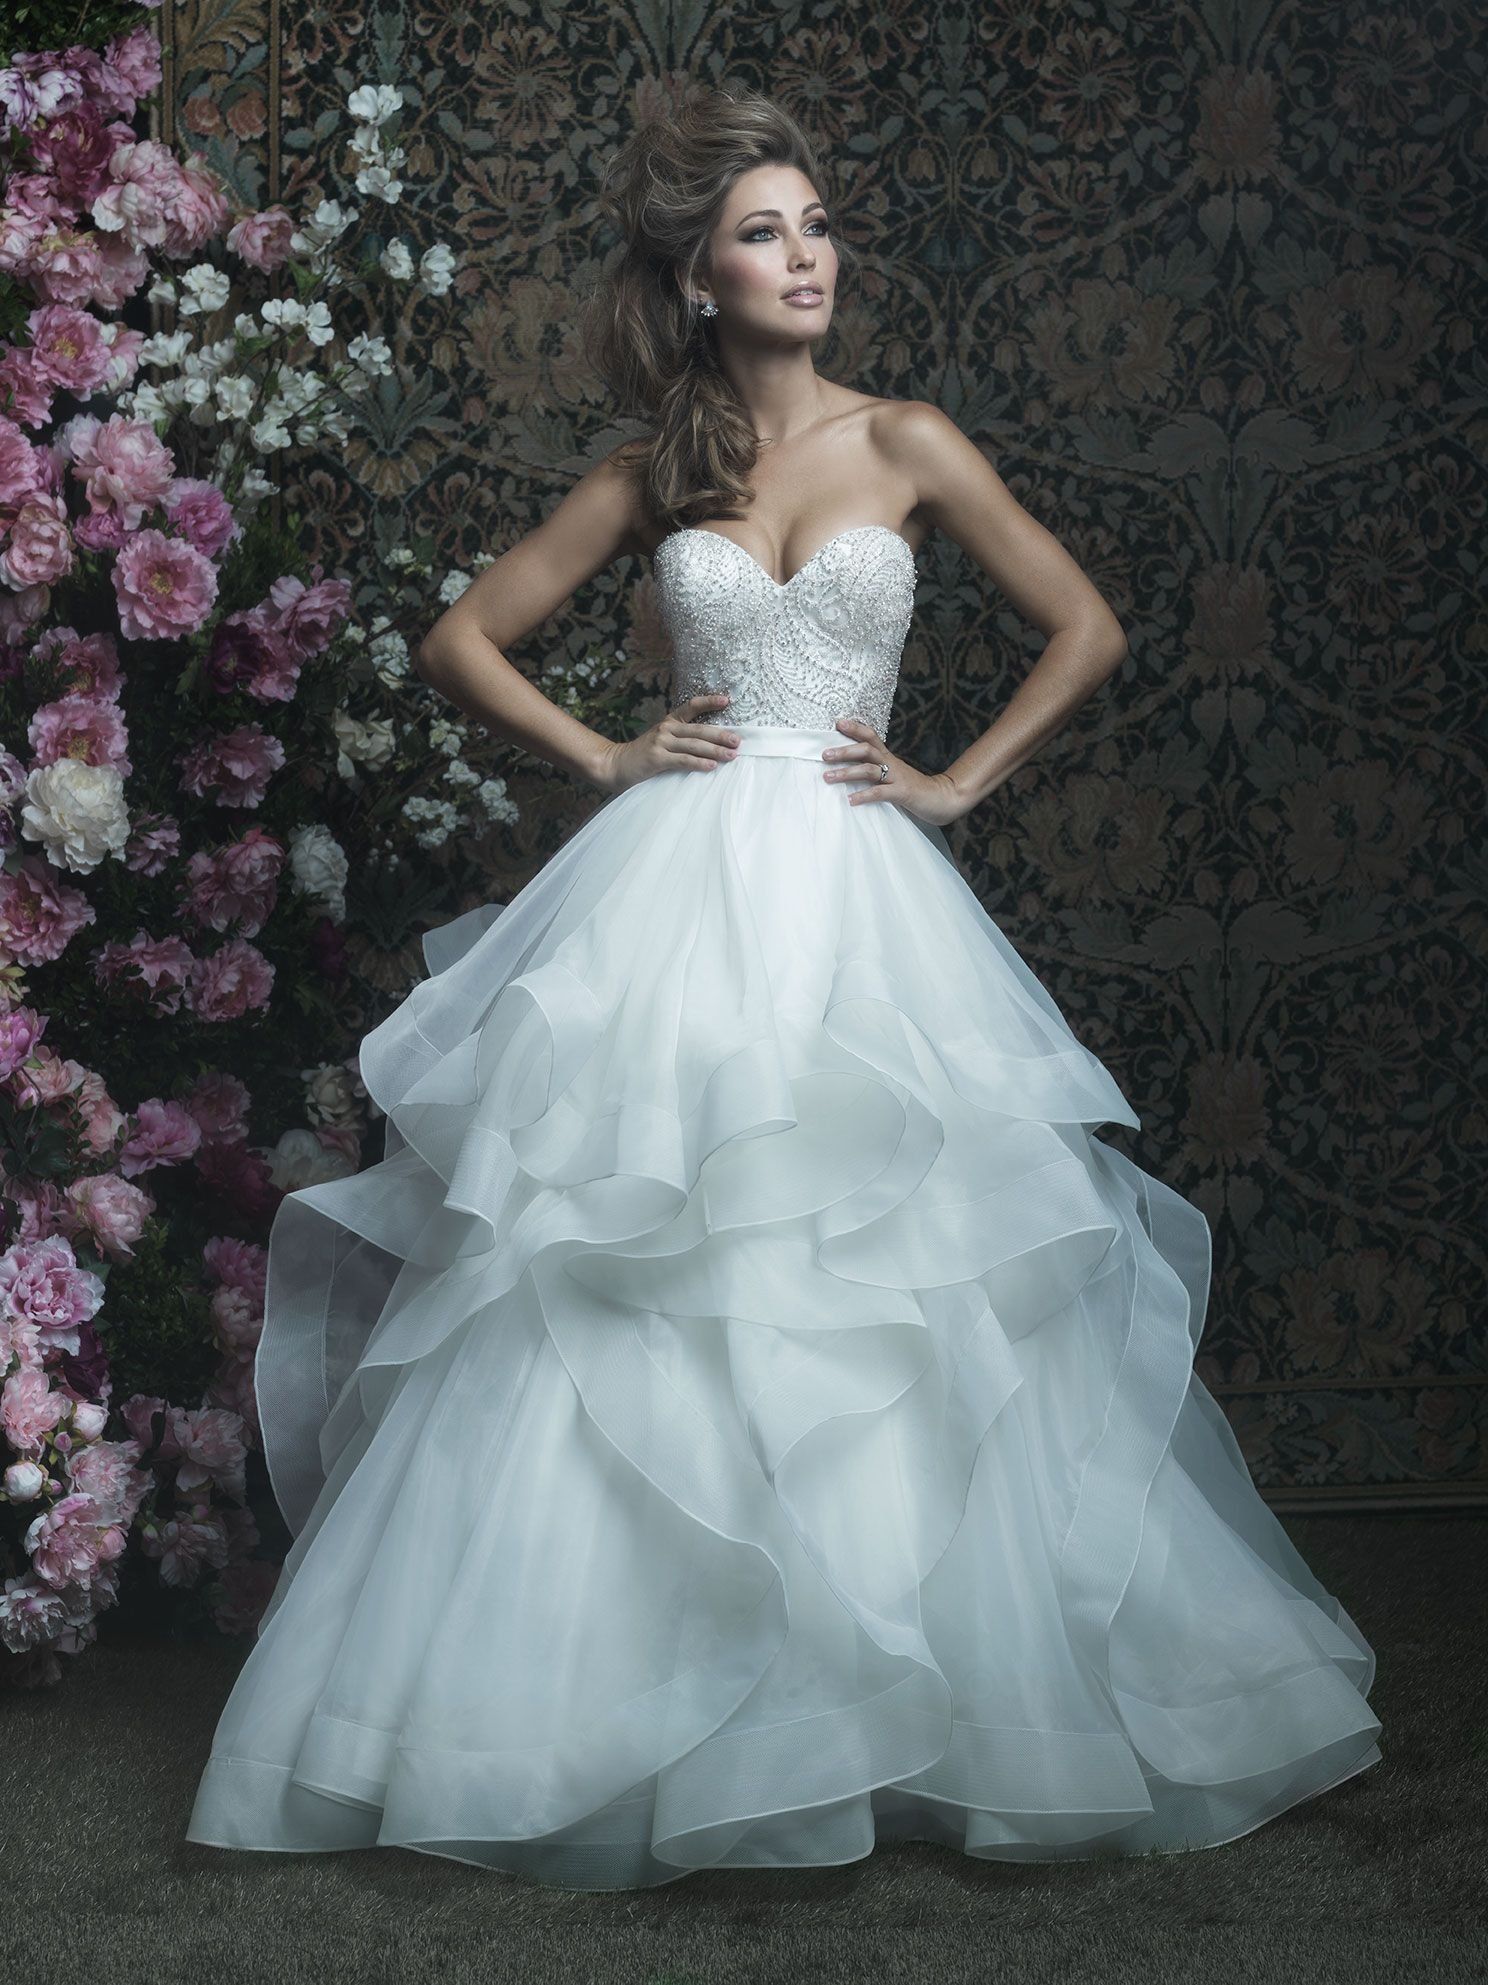 Allure Couture style C417 | Try her on at Ava\'s Bridal Couture! Call ...